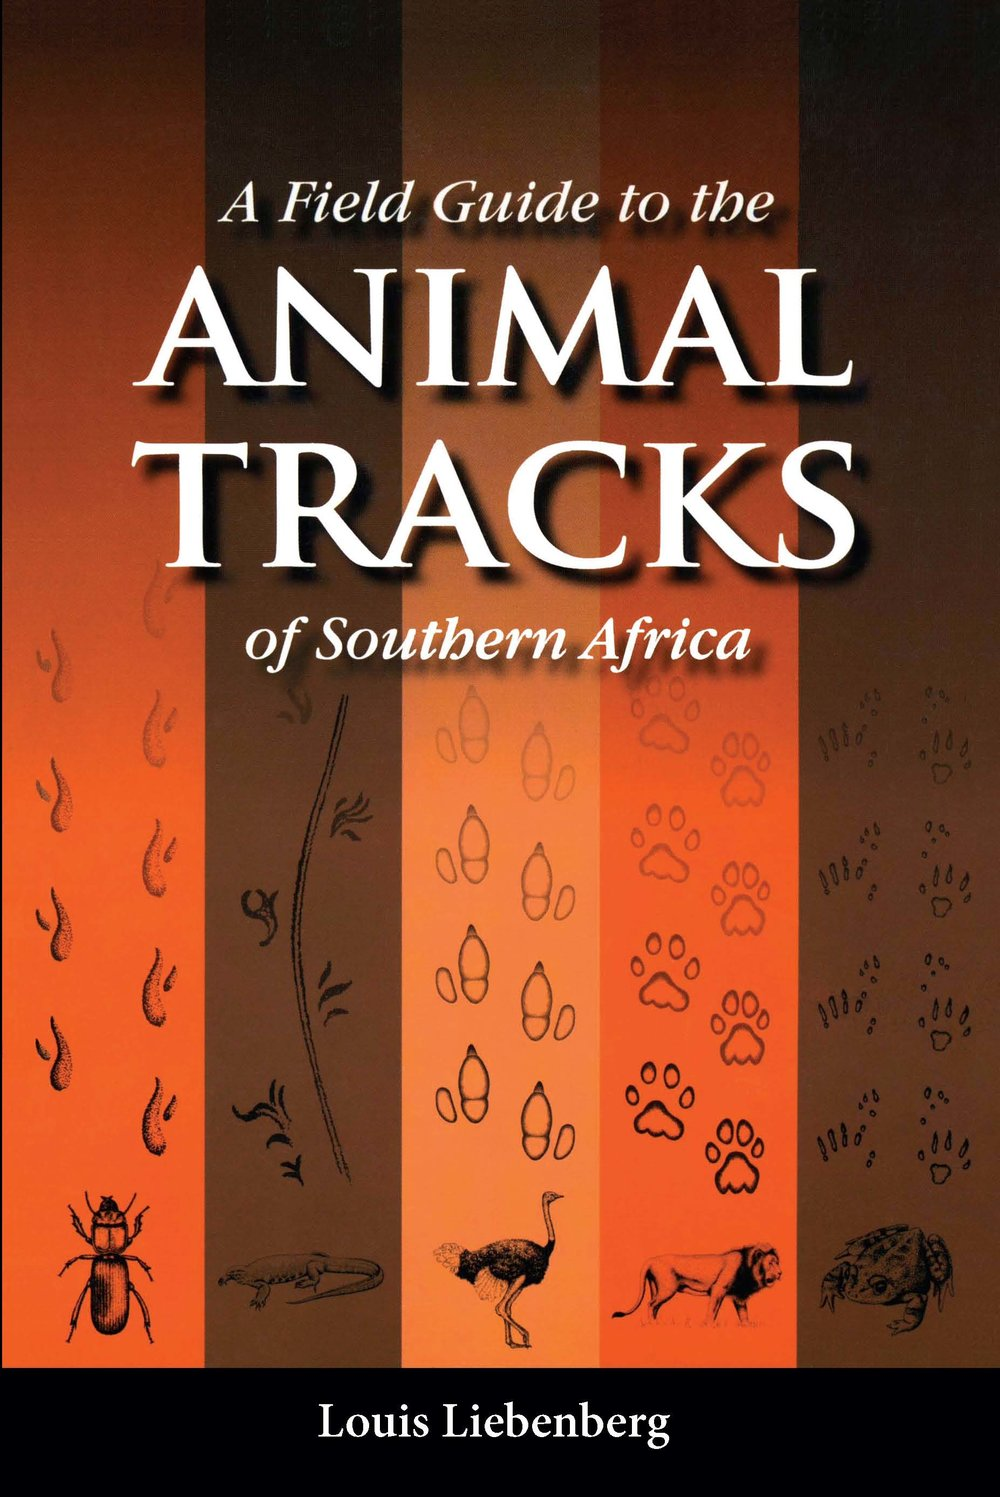 A Field Guide to the Animal Tracks of Southern Africa - Louis Liebenberg